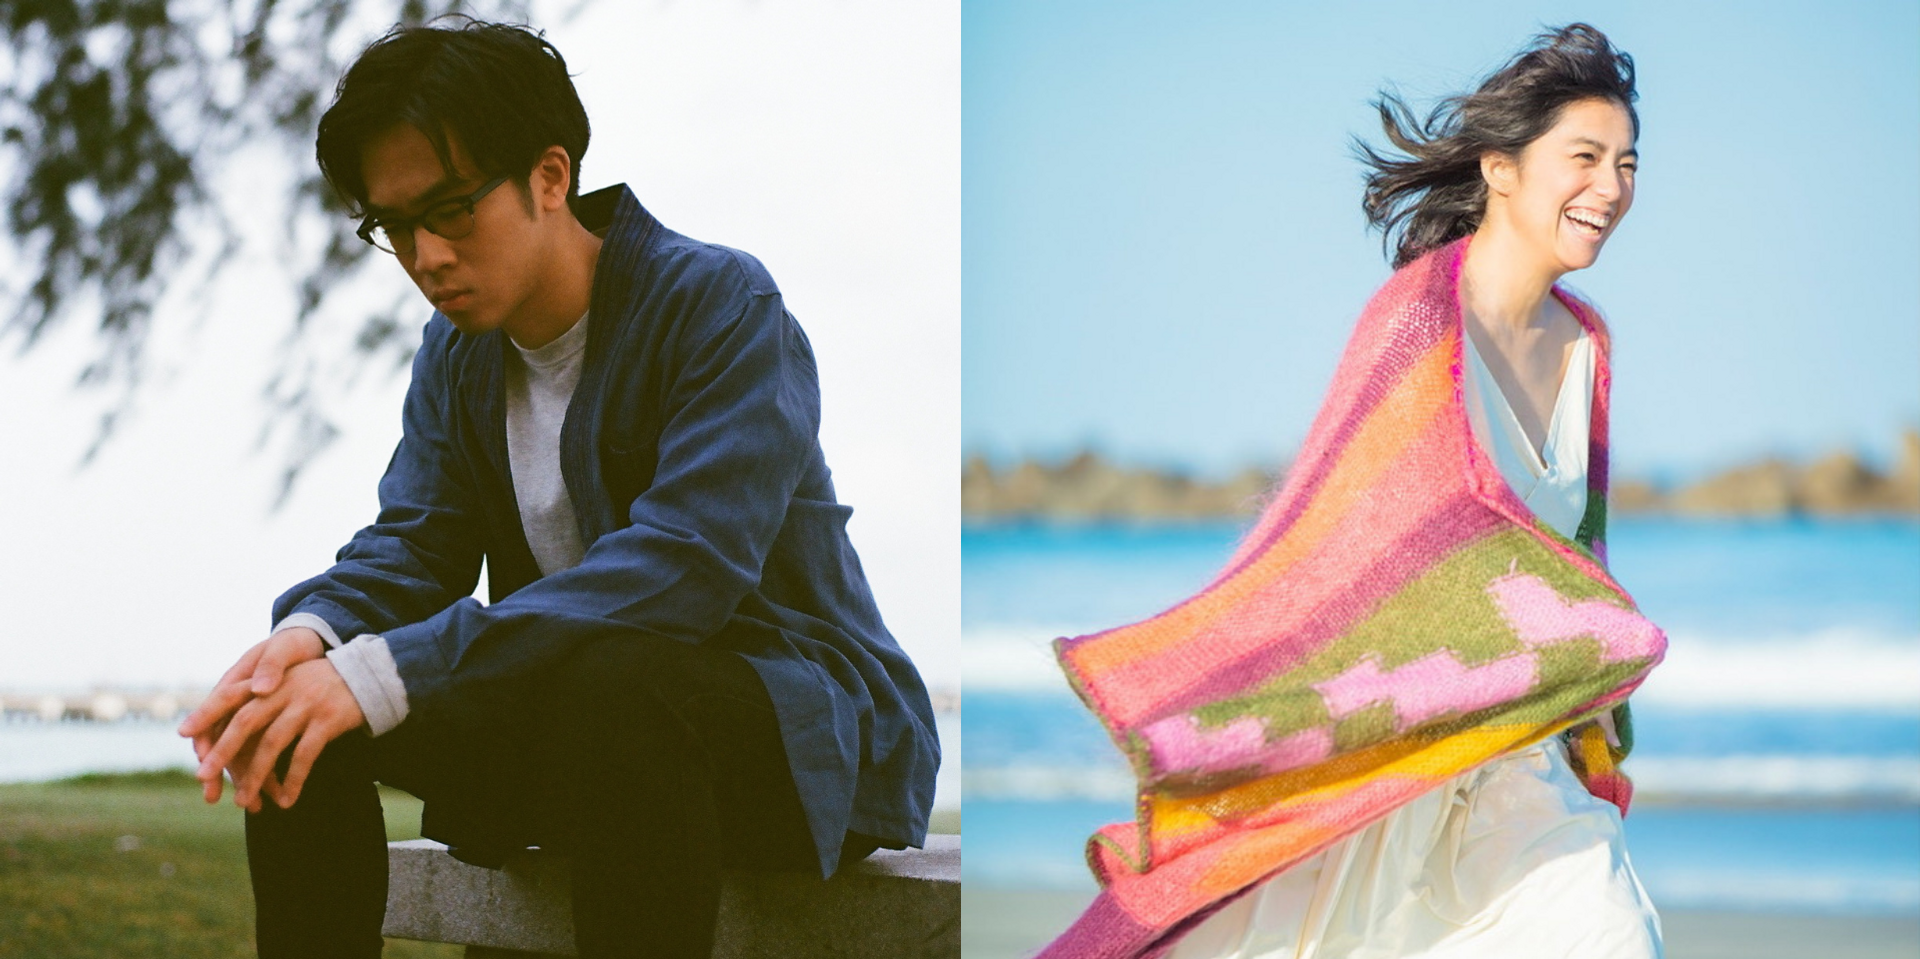 """""""Always treasure the people and community around you"""": Charlie Lim and Miho Fukuhara on their collaborative single 'Ashes' – listen"""